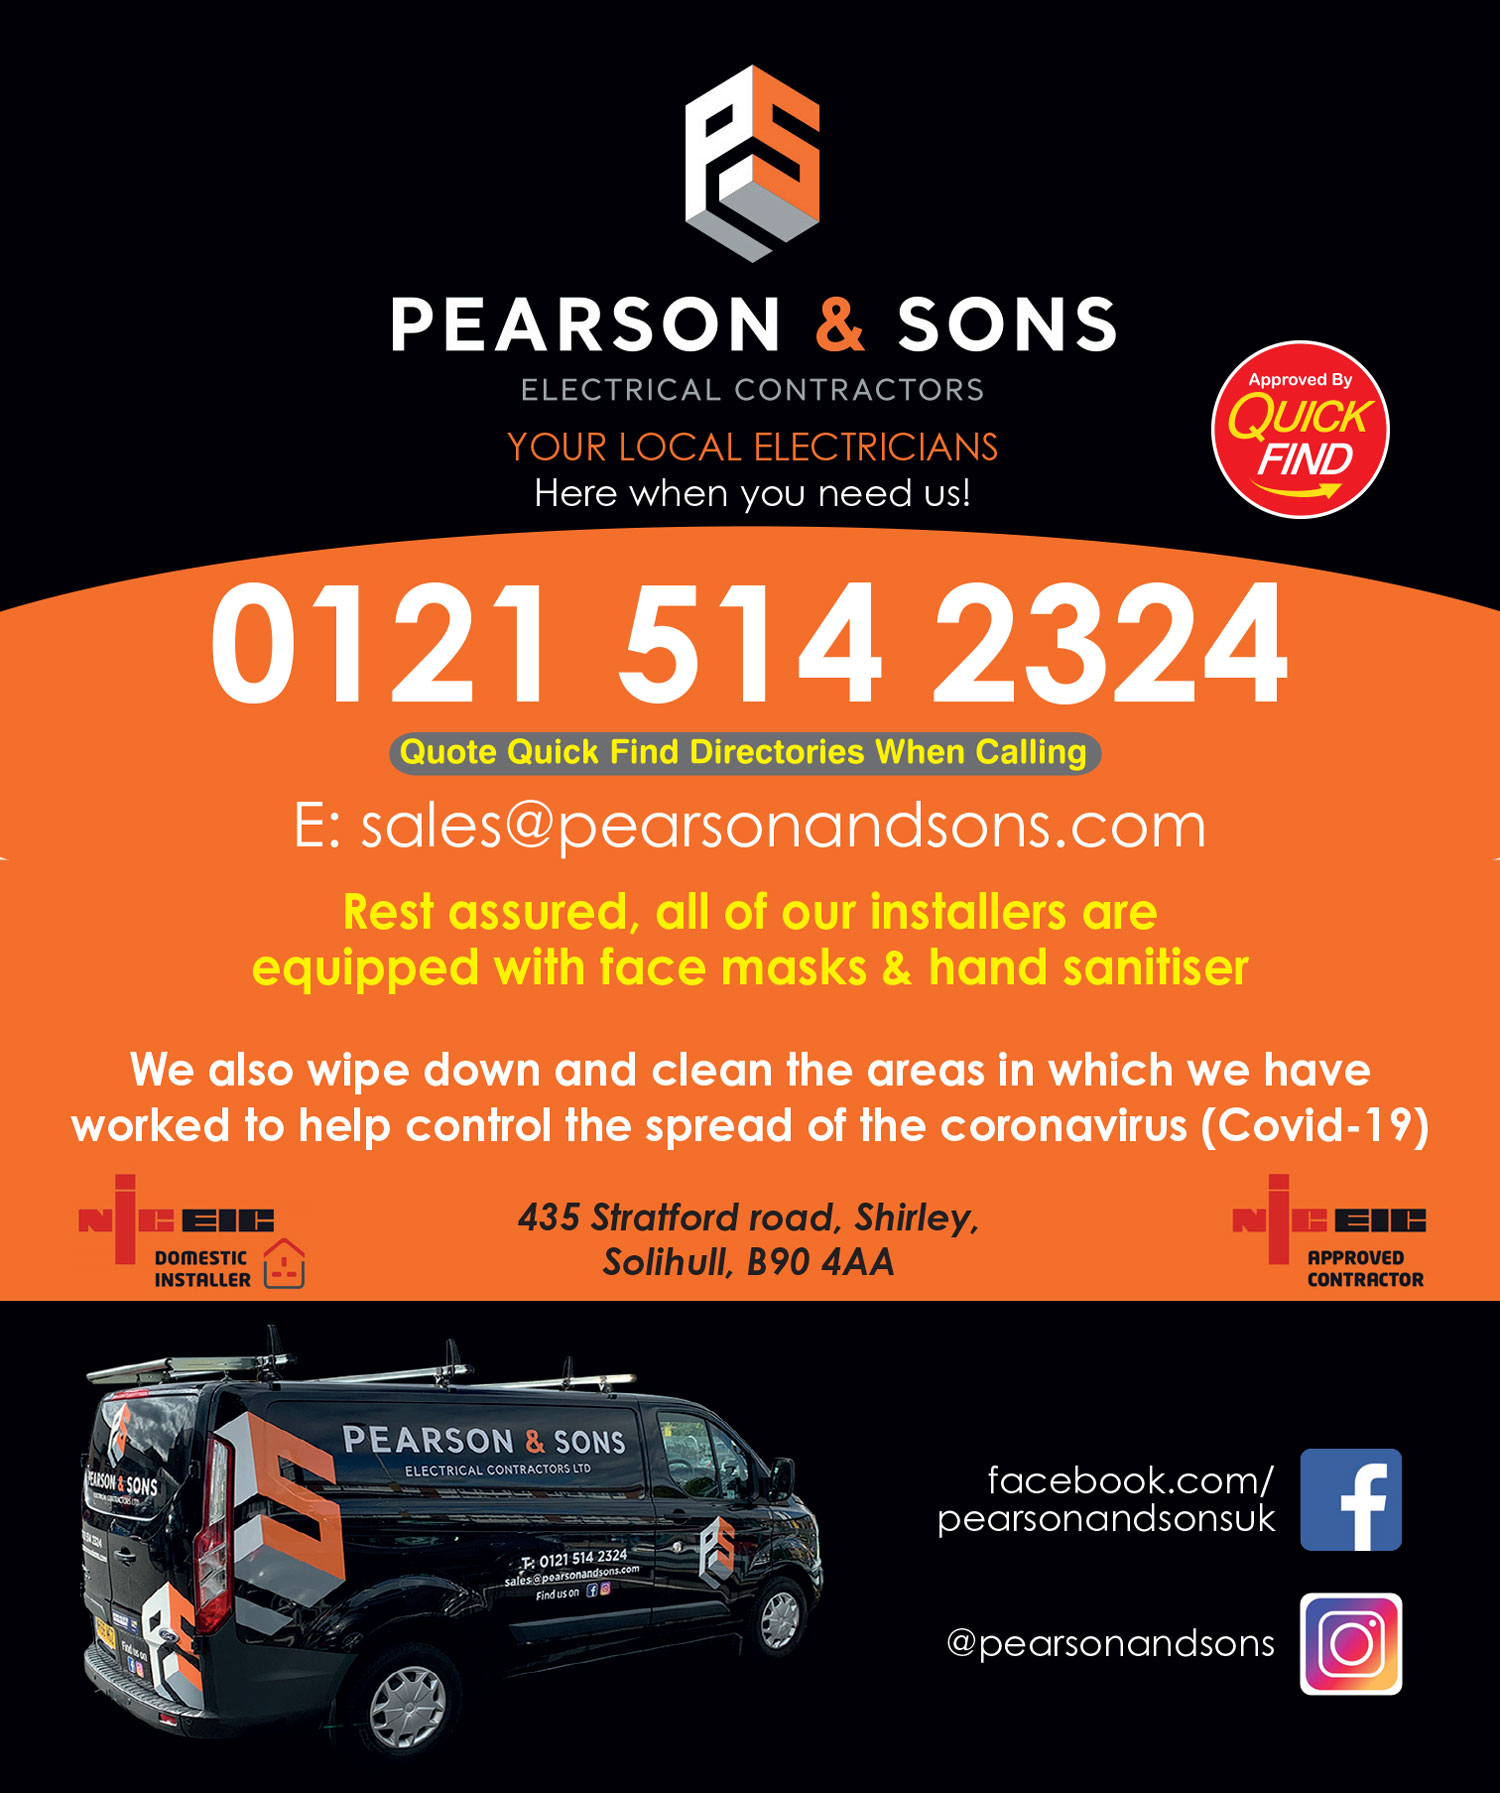 Pearson & Sons Electrical Contractors